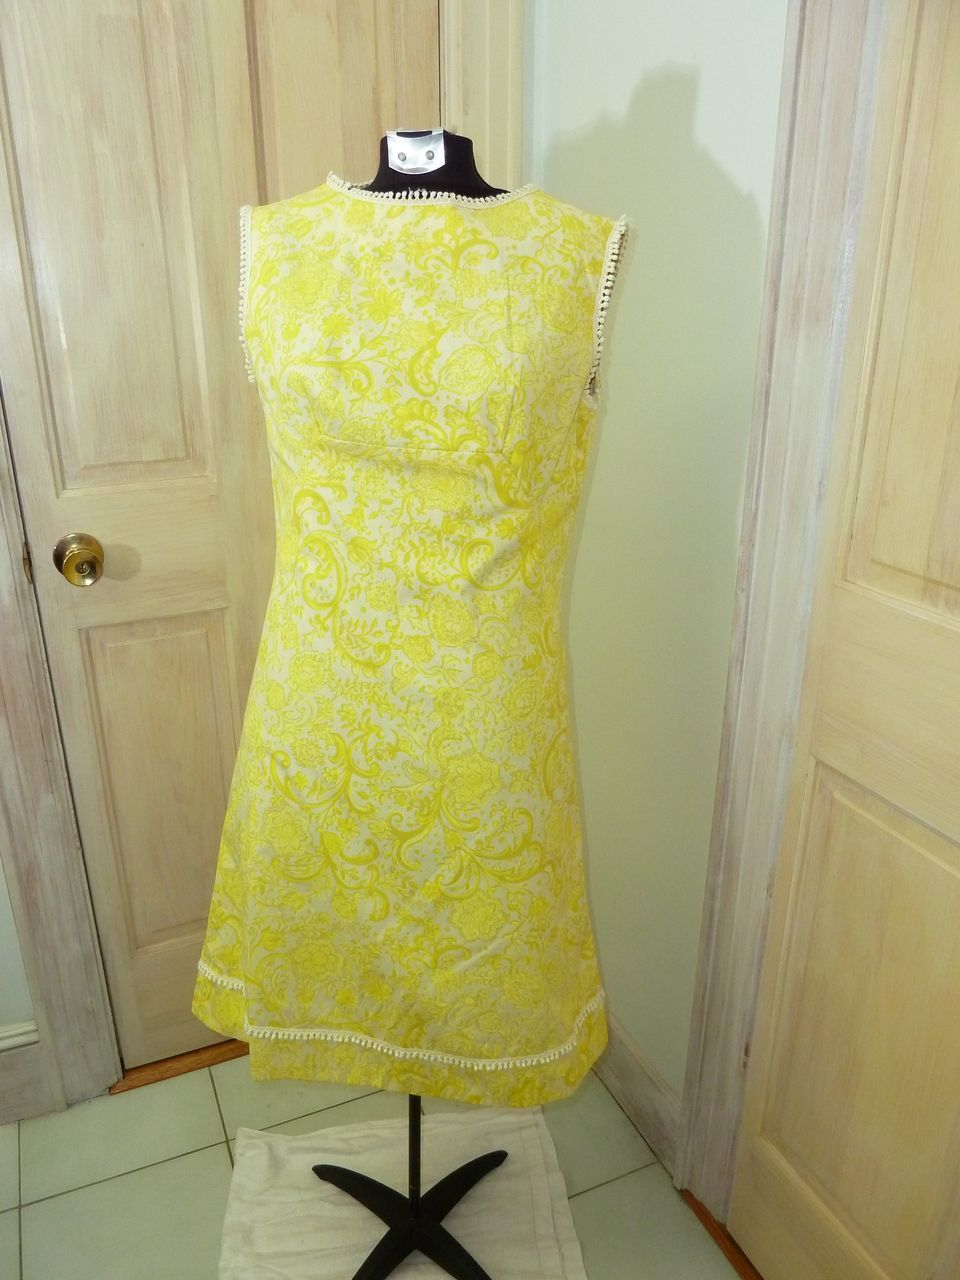 1950s 1960s Yellow And White Shift Dress With Fringe Etsy Shift Dress Dresses White Shift Dresses [ 1280 x 960 Pixel ]